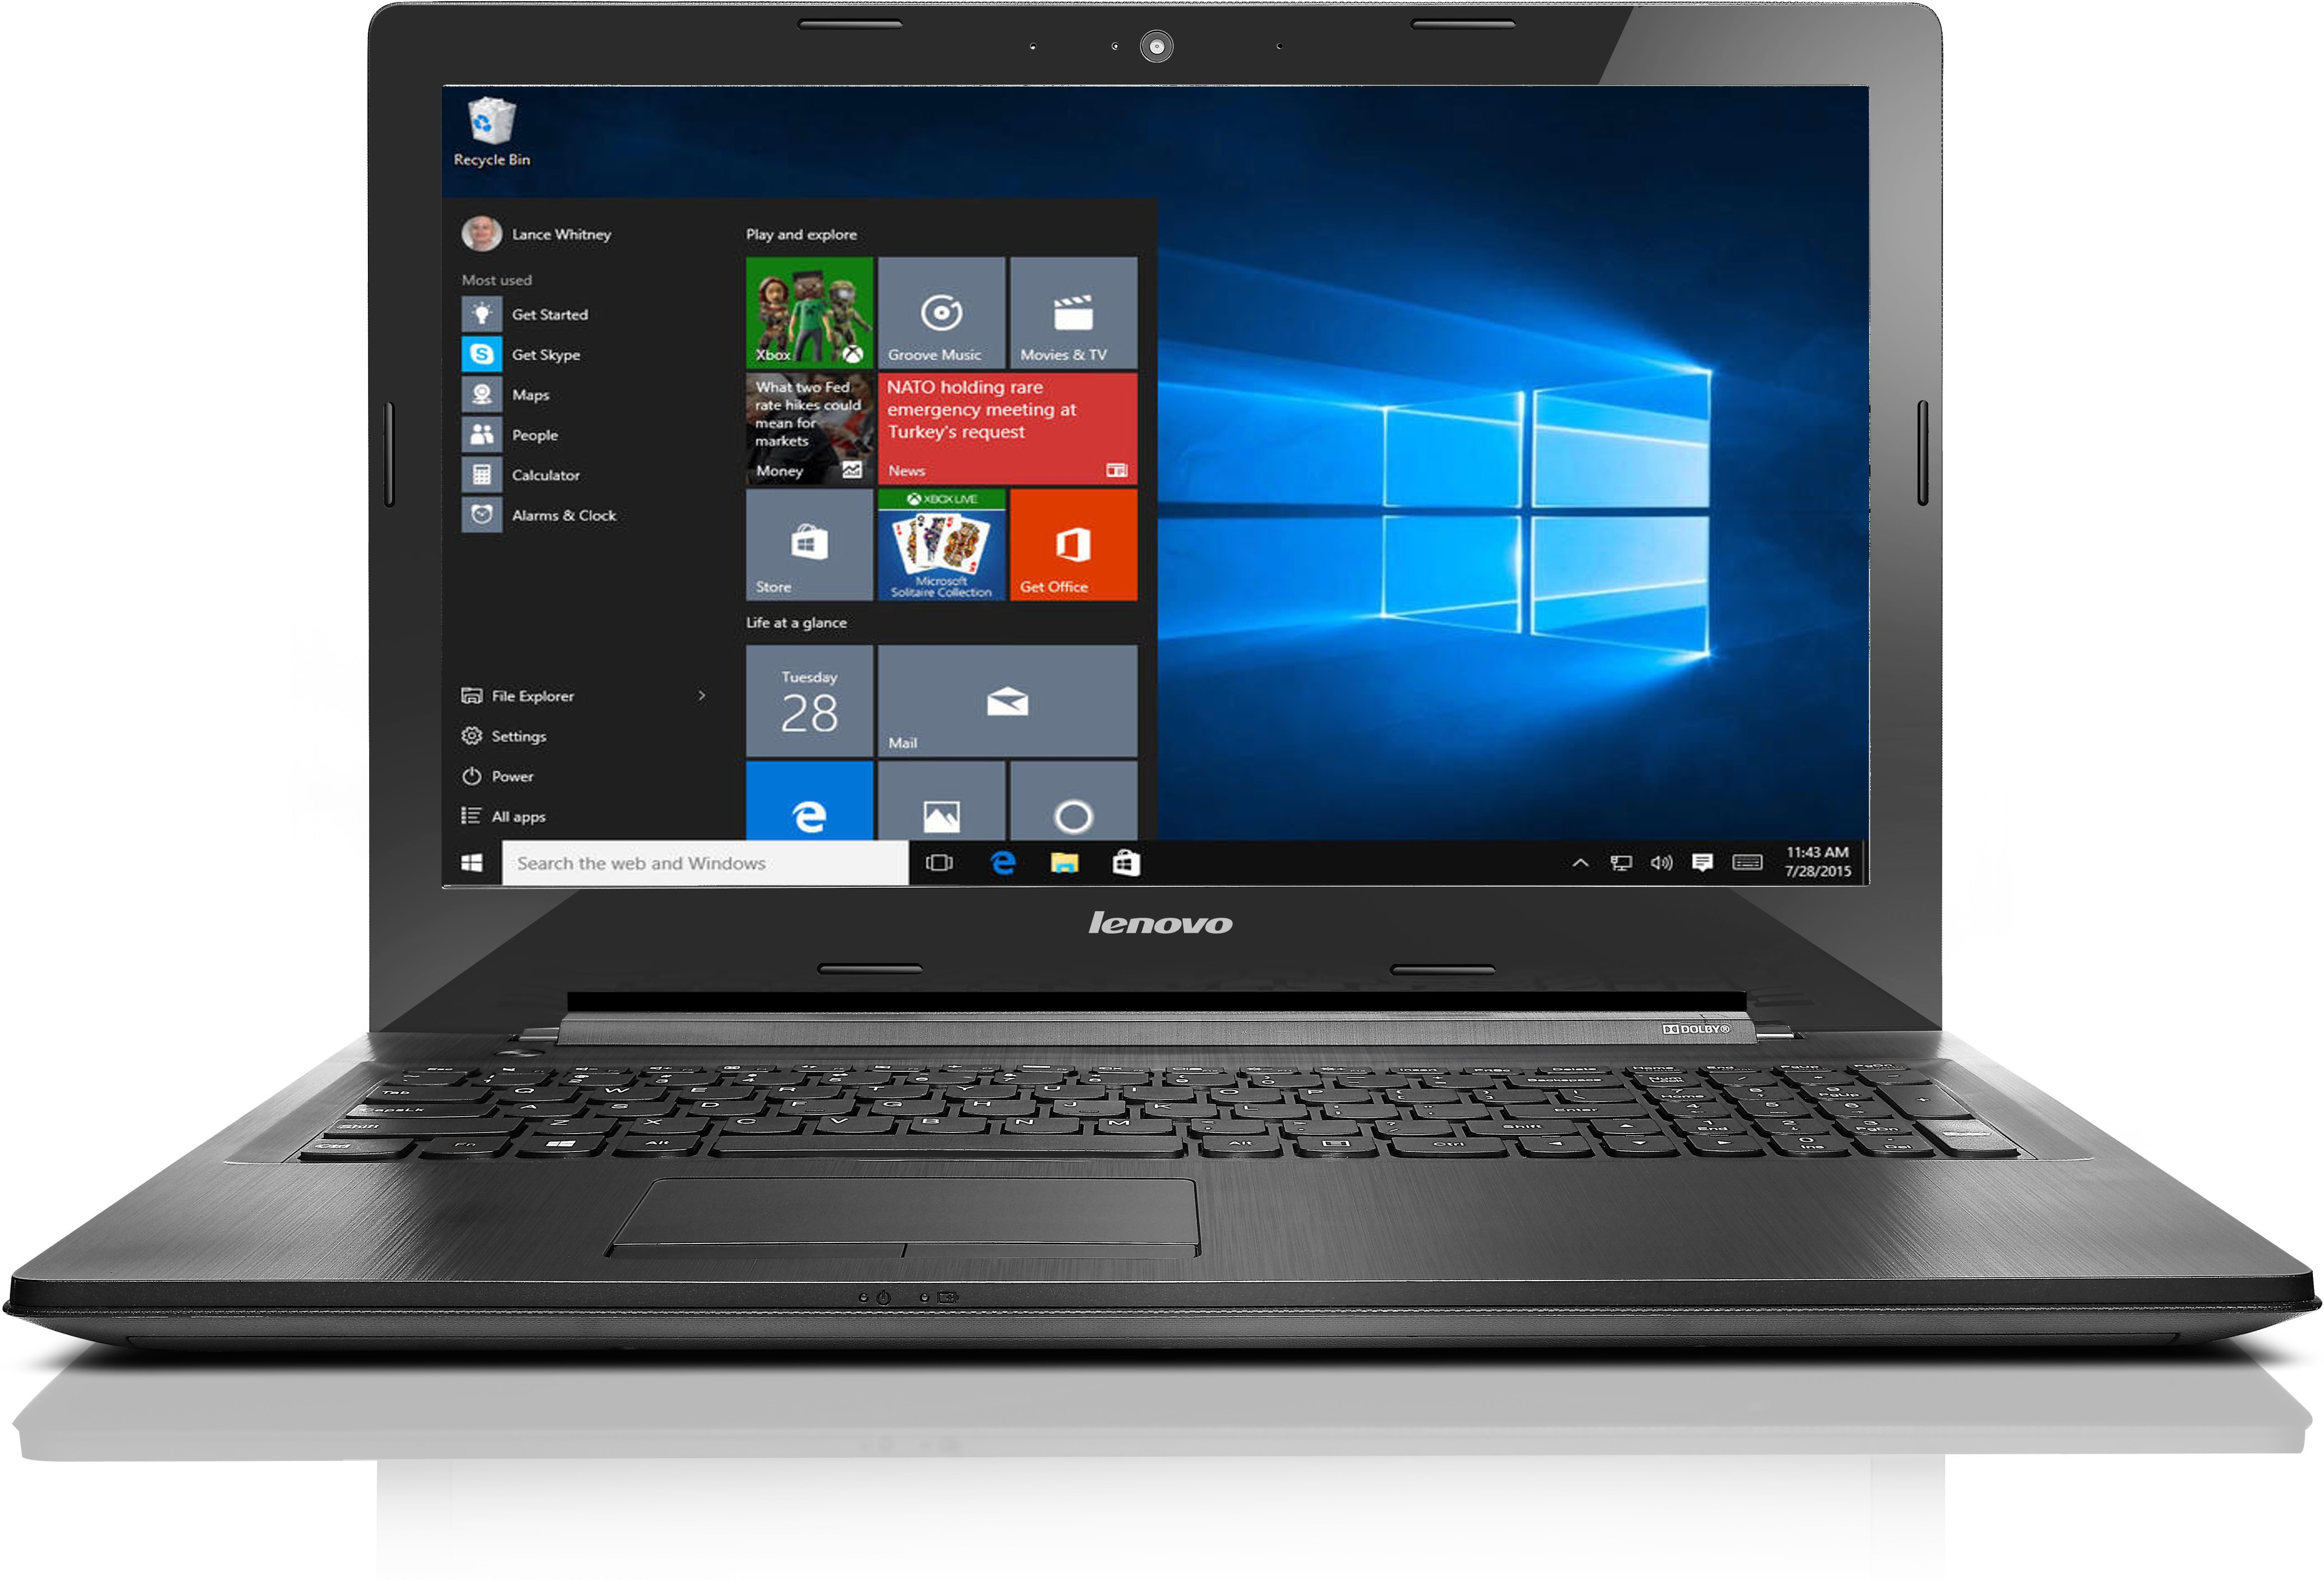 Deals - Jodhpur - From ₹ 36990 <br> Lenovo Core i5 Laptops<br> Category - computers<br> Business - Flipkart.com